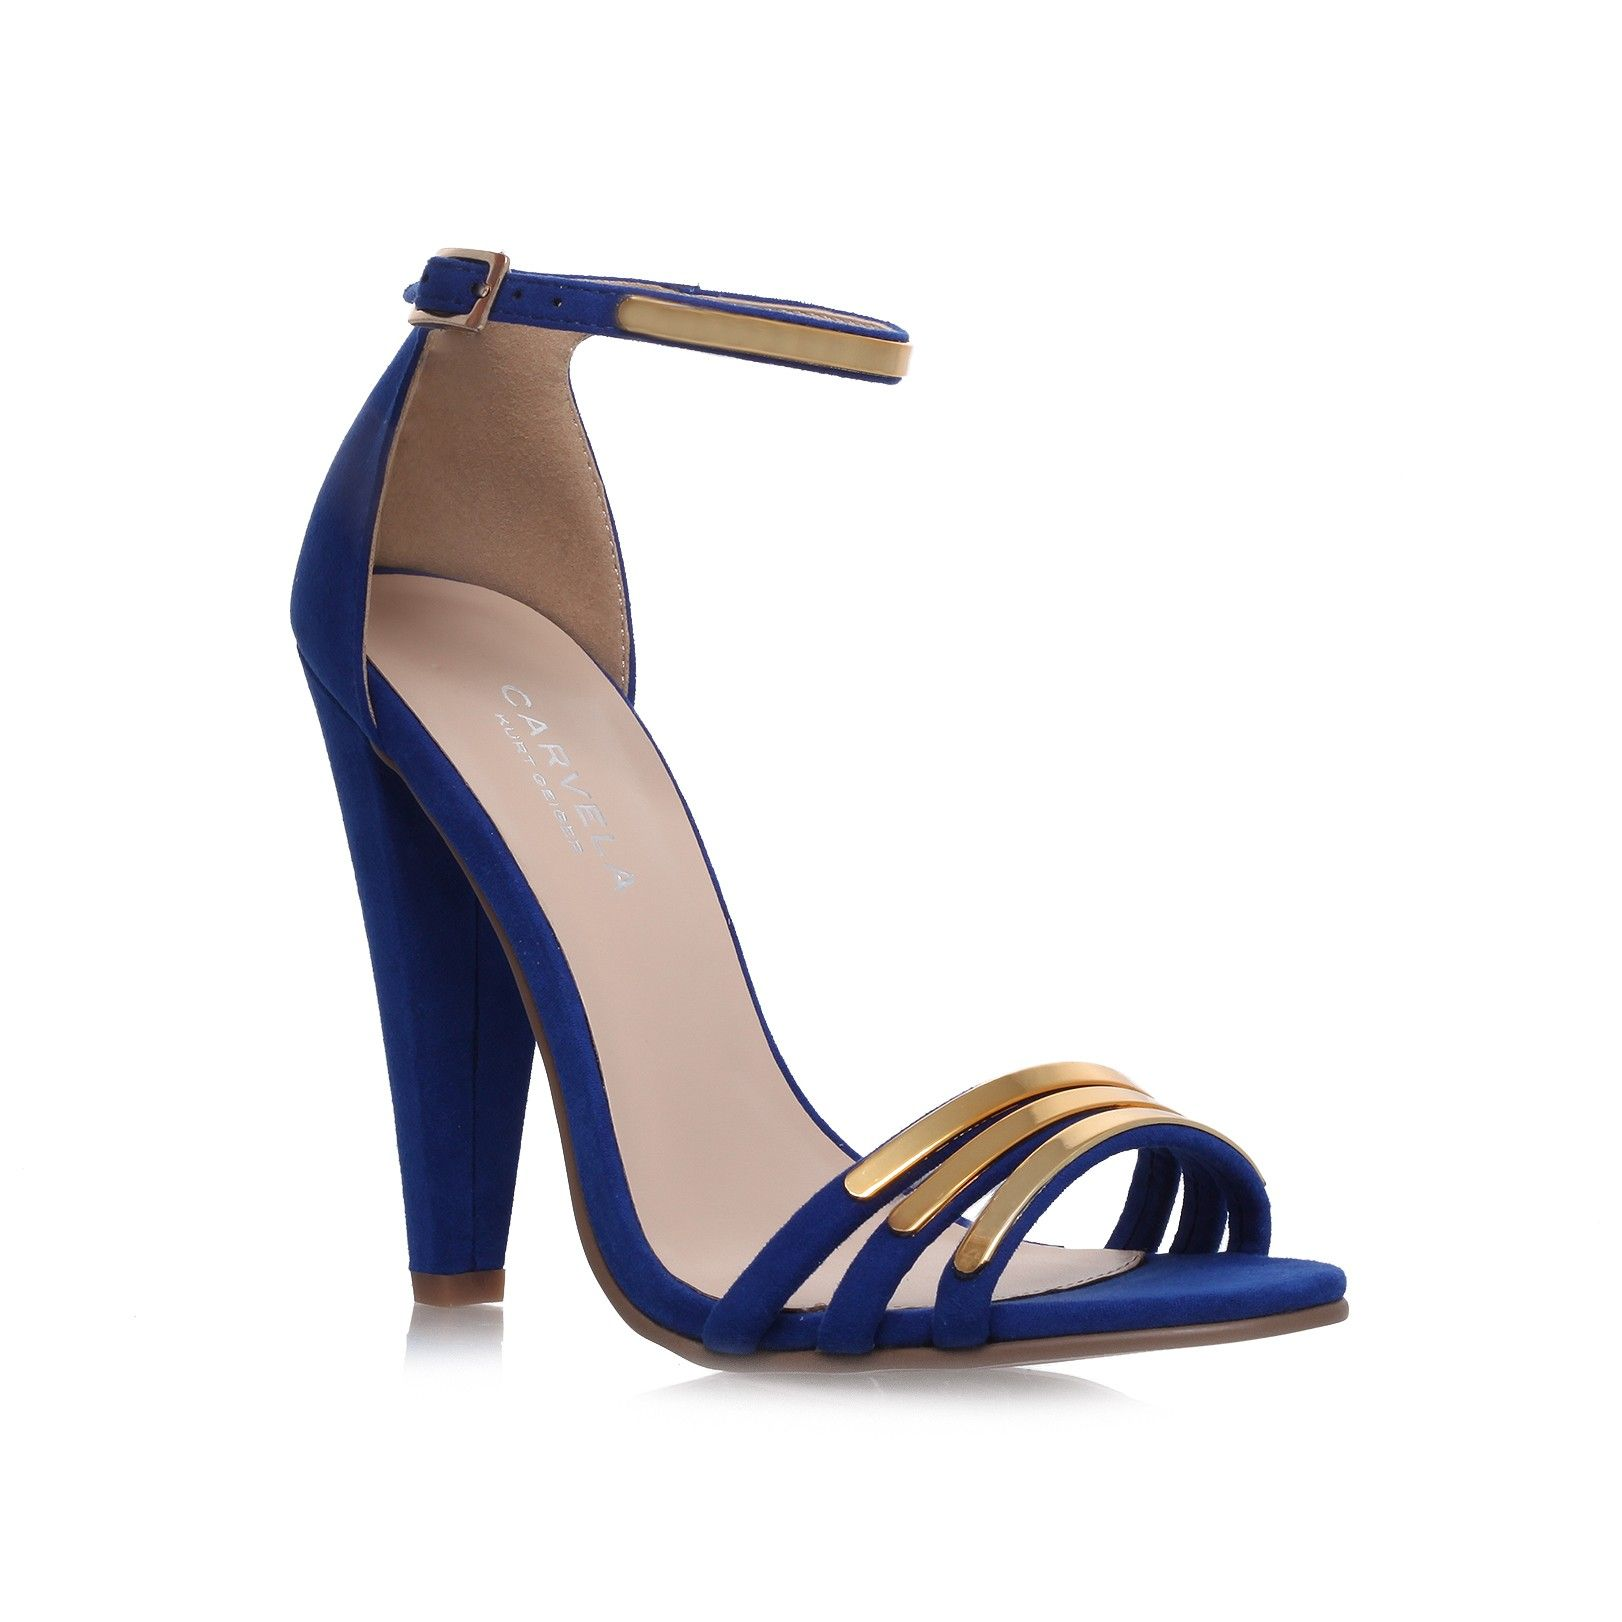 905f17b026 CARA Carvela Kurt Geiger BLUE | shoes | Shoes, Carvela kurt geiger ...